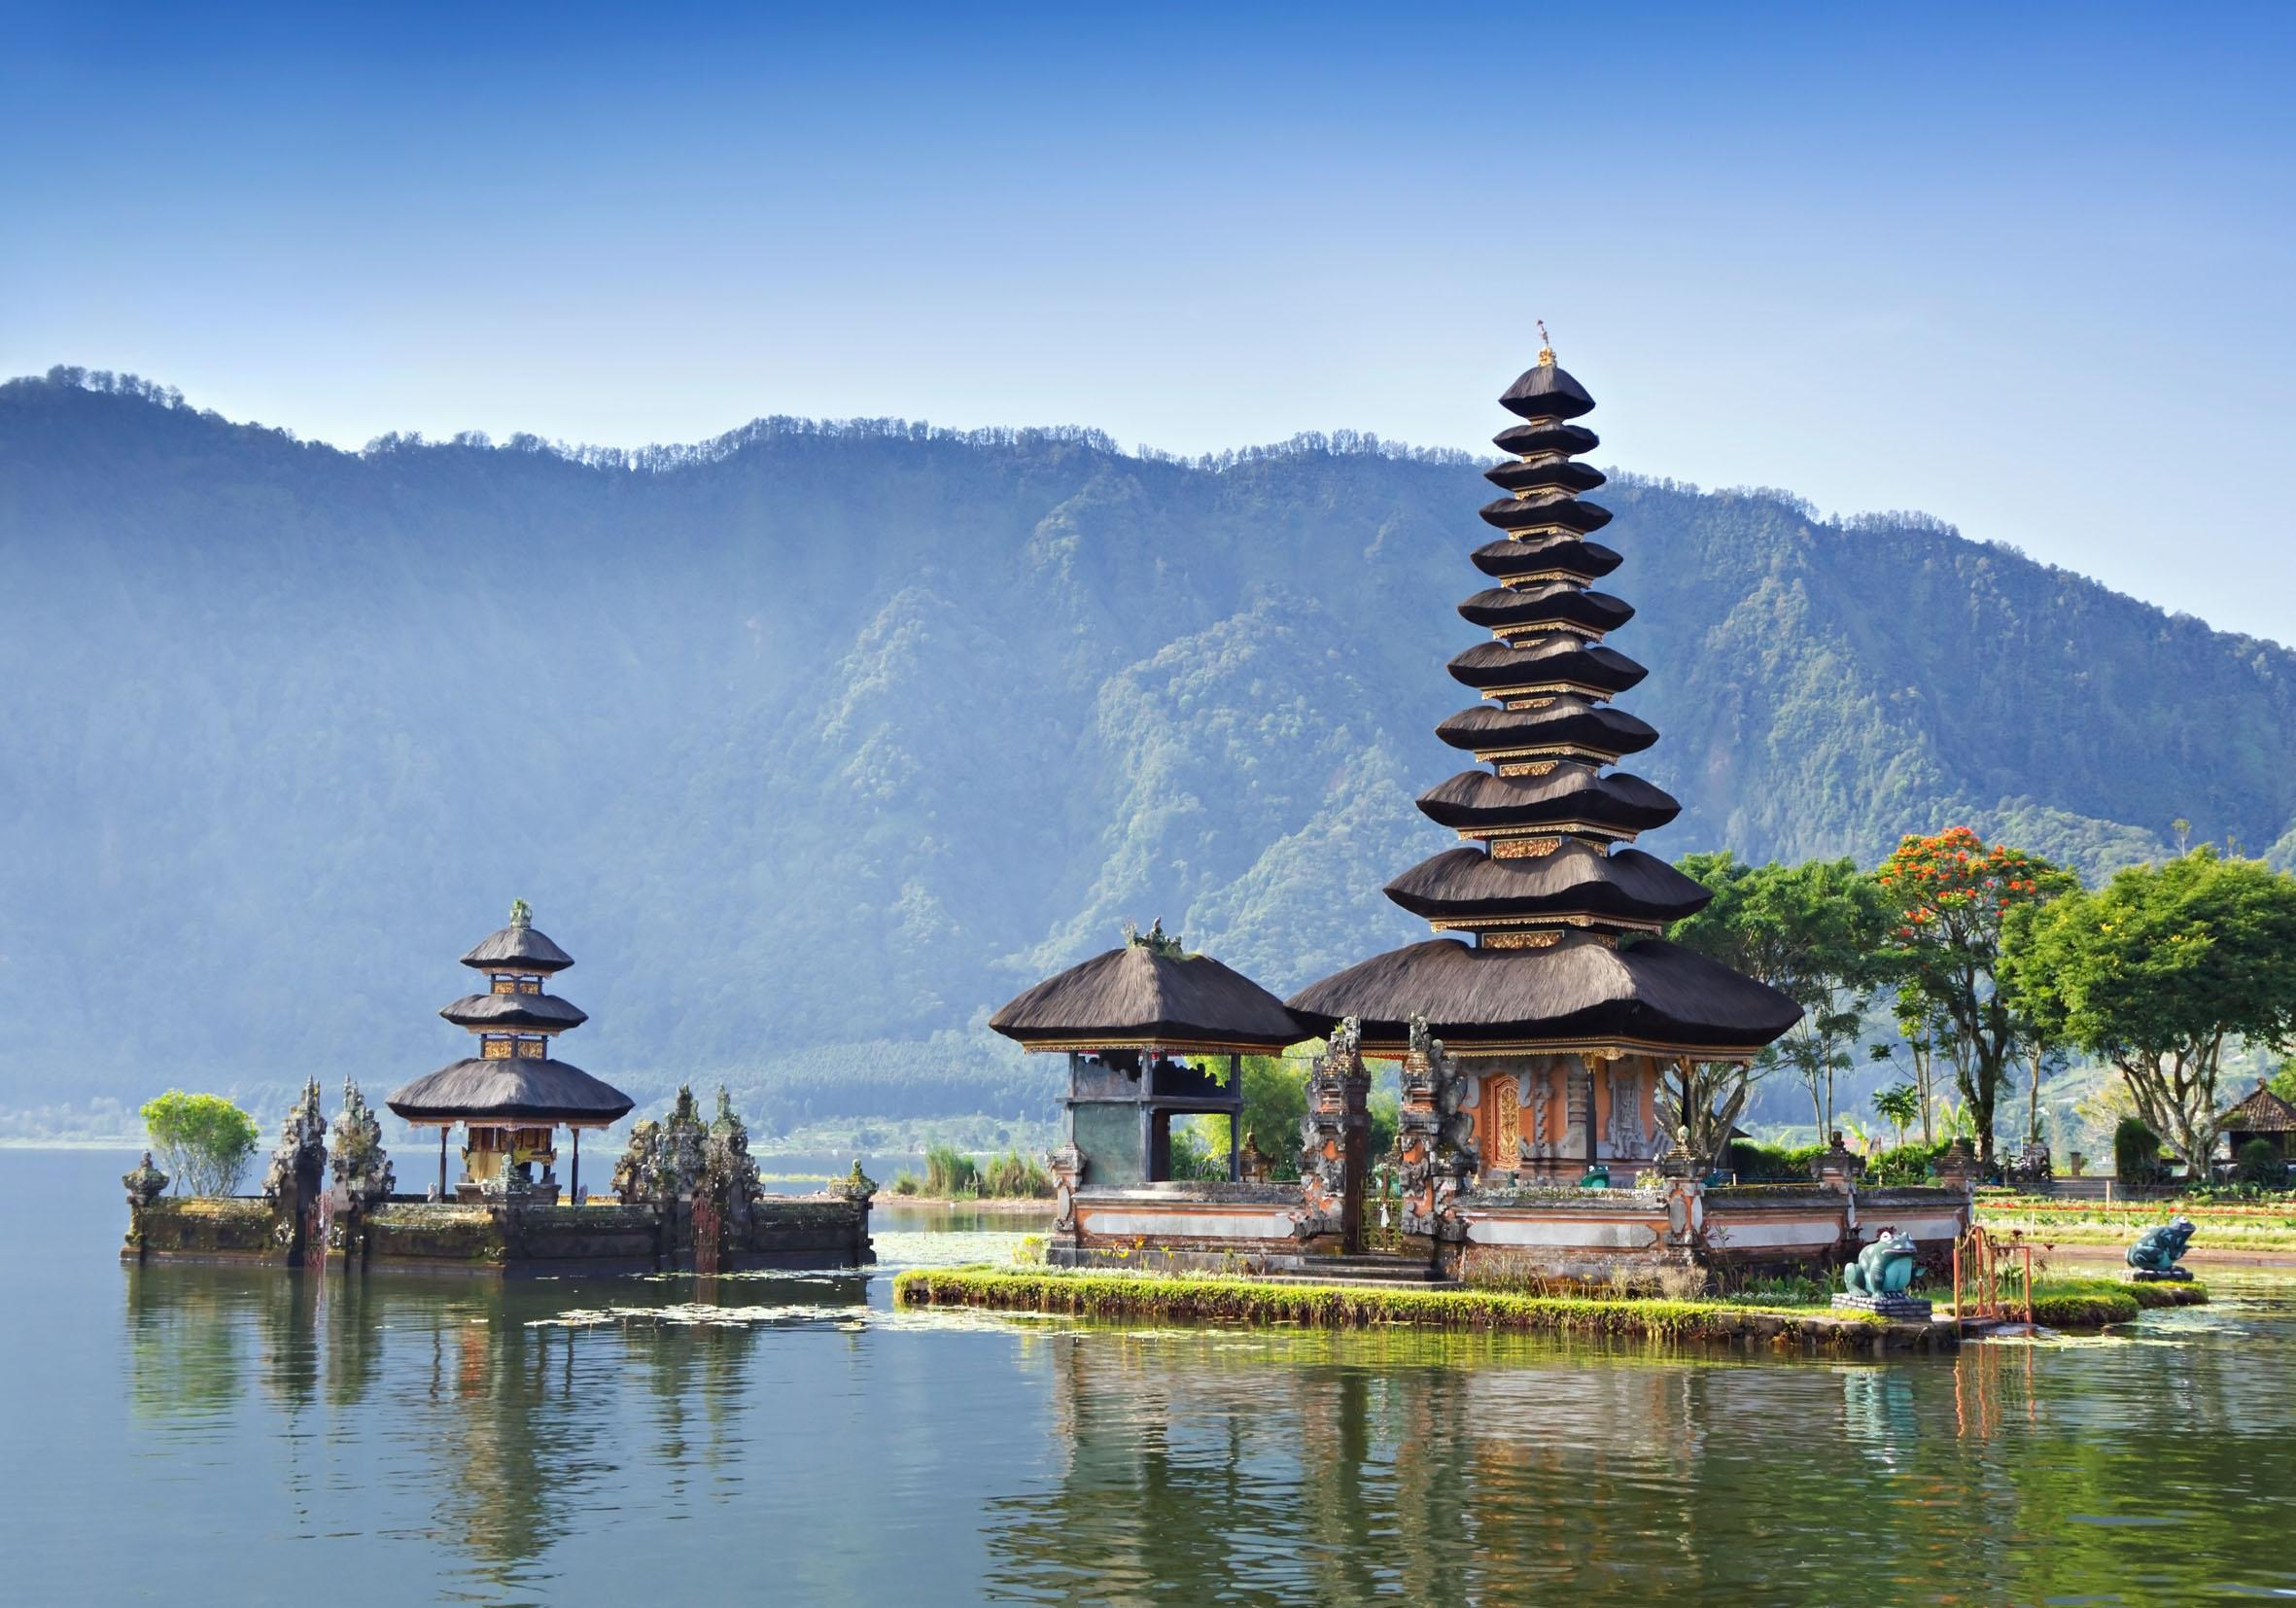 16 Days Honeymoon In Vietnam And Bali 1391 Pers In 3 And 4 Stars Hotels Routes Vietnam